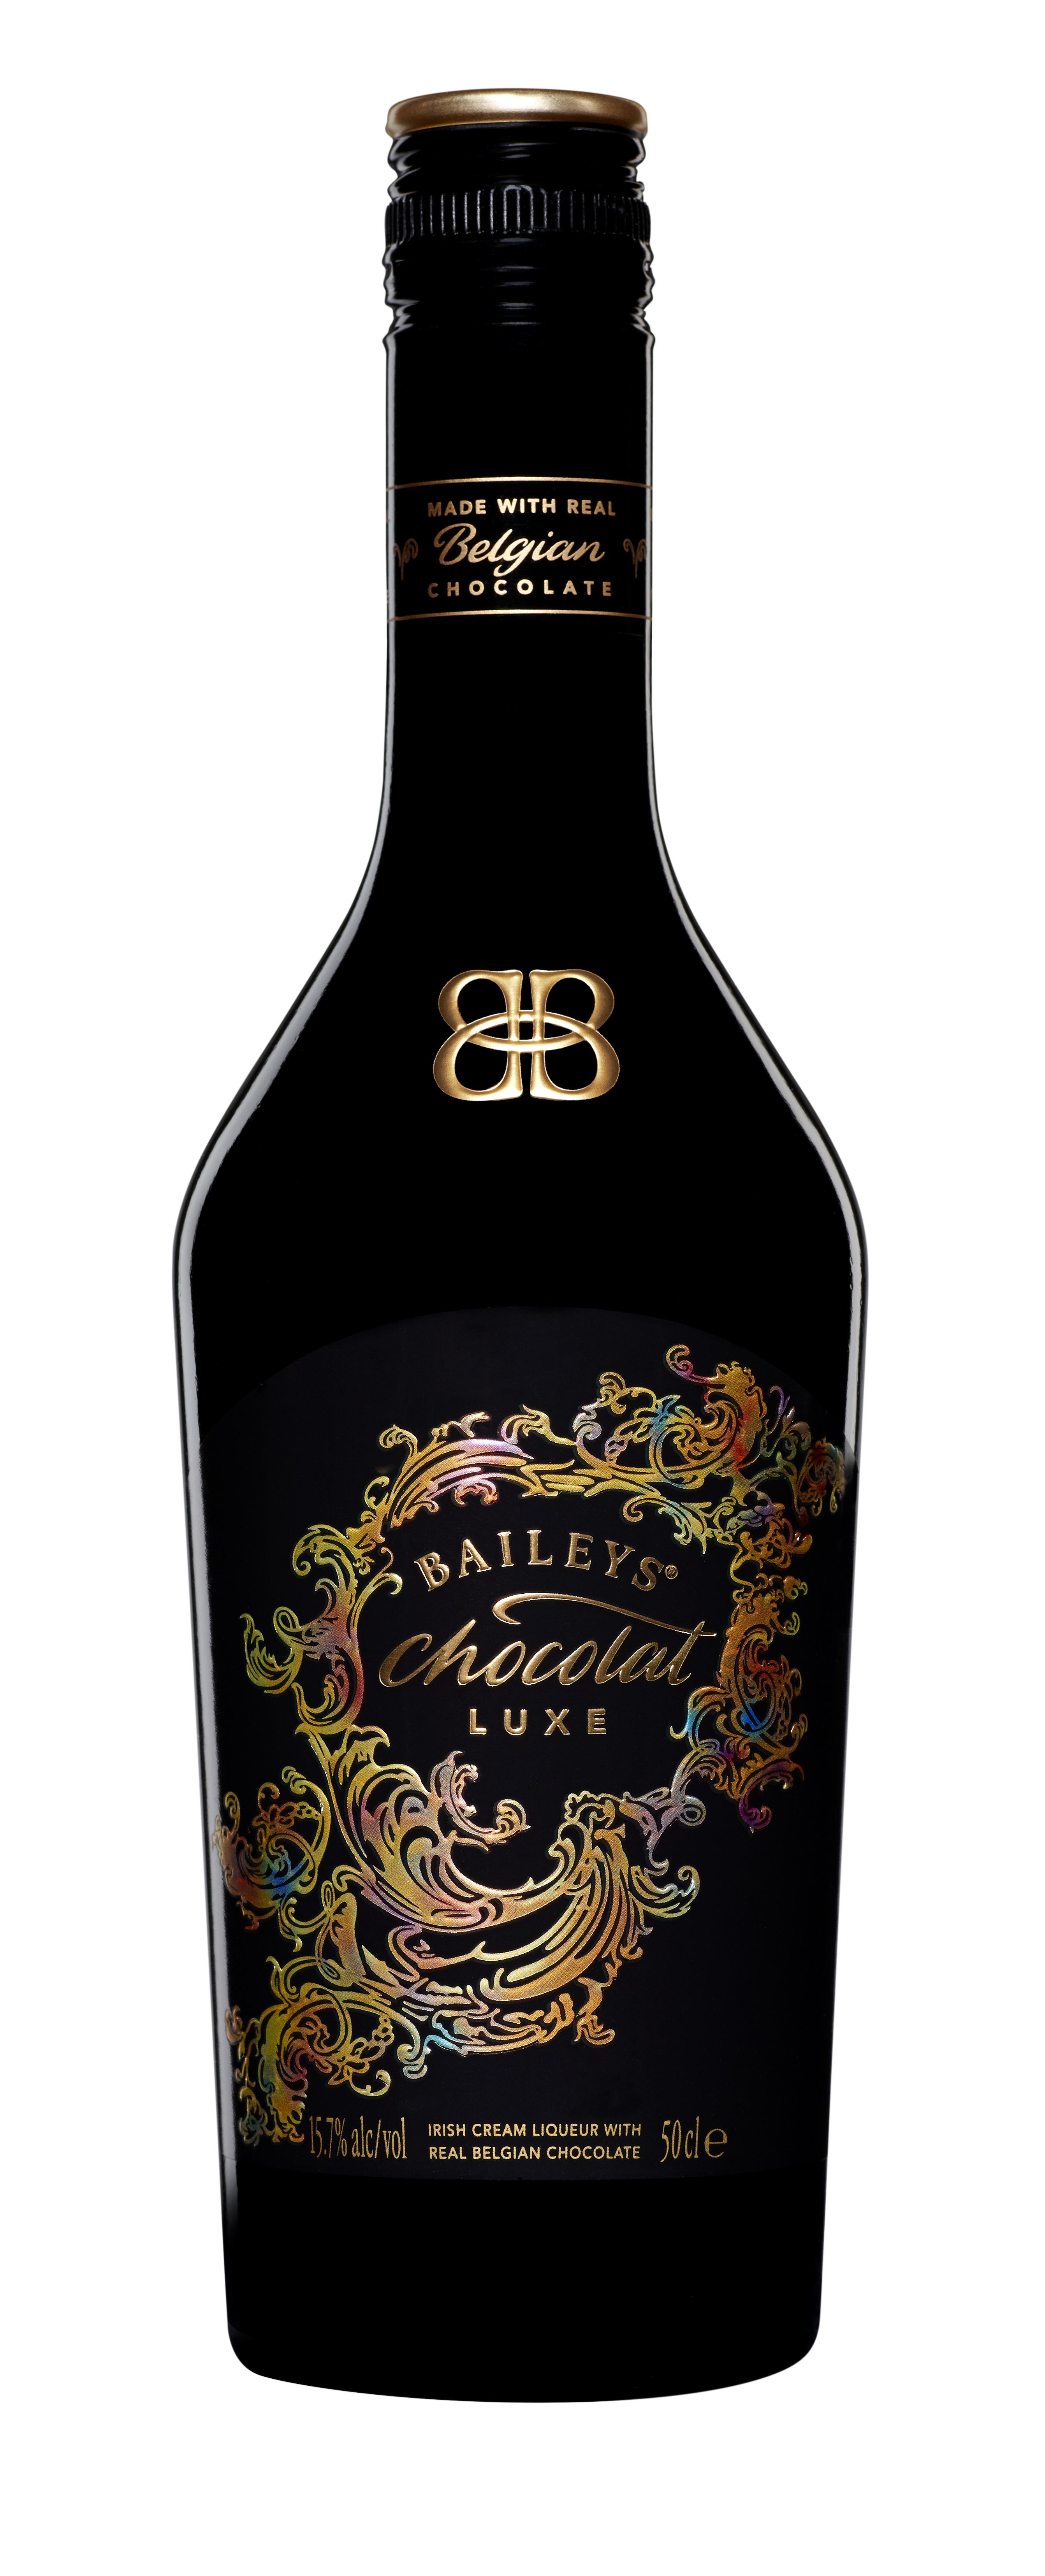 Baileys chocolat luxe diageo announces one of its most for The bailey